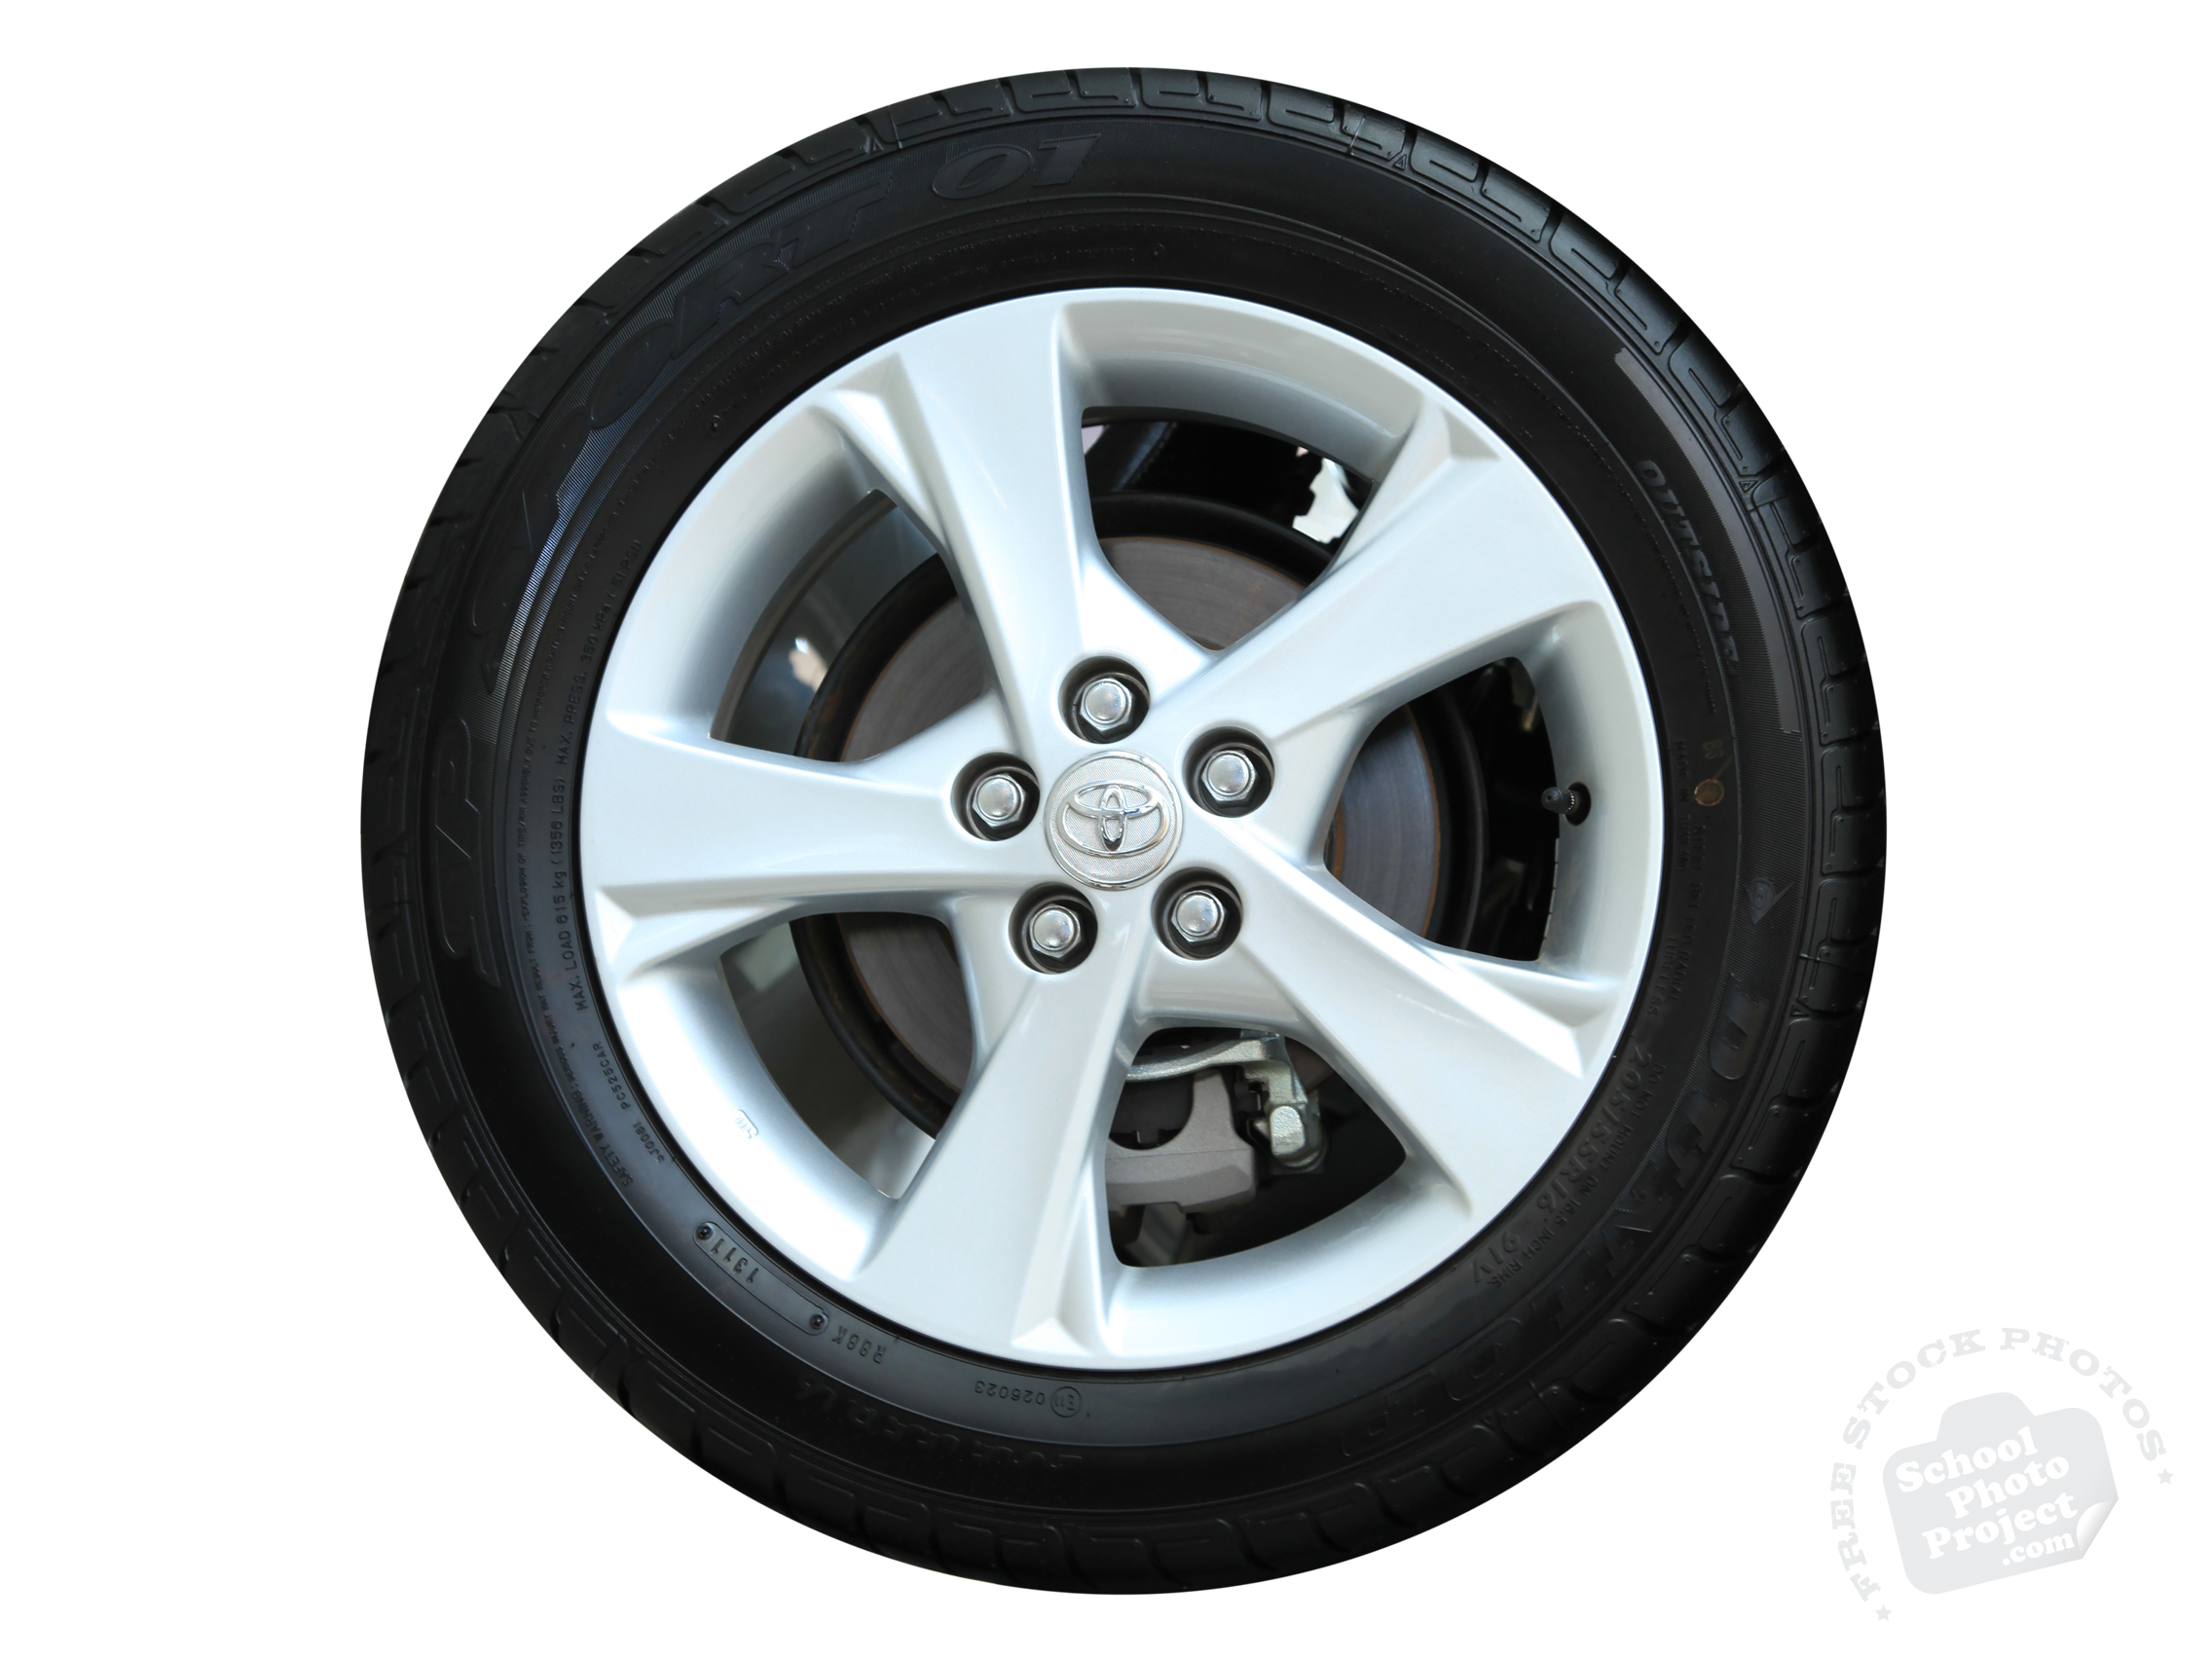 Car Tire, FREE Stock Photo, Image, Picture: Toyota Car